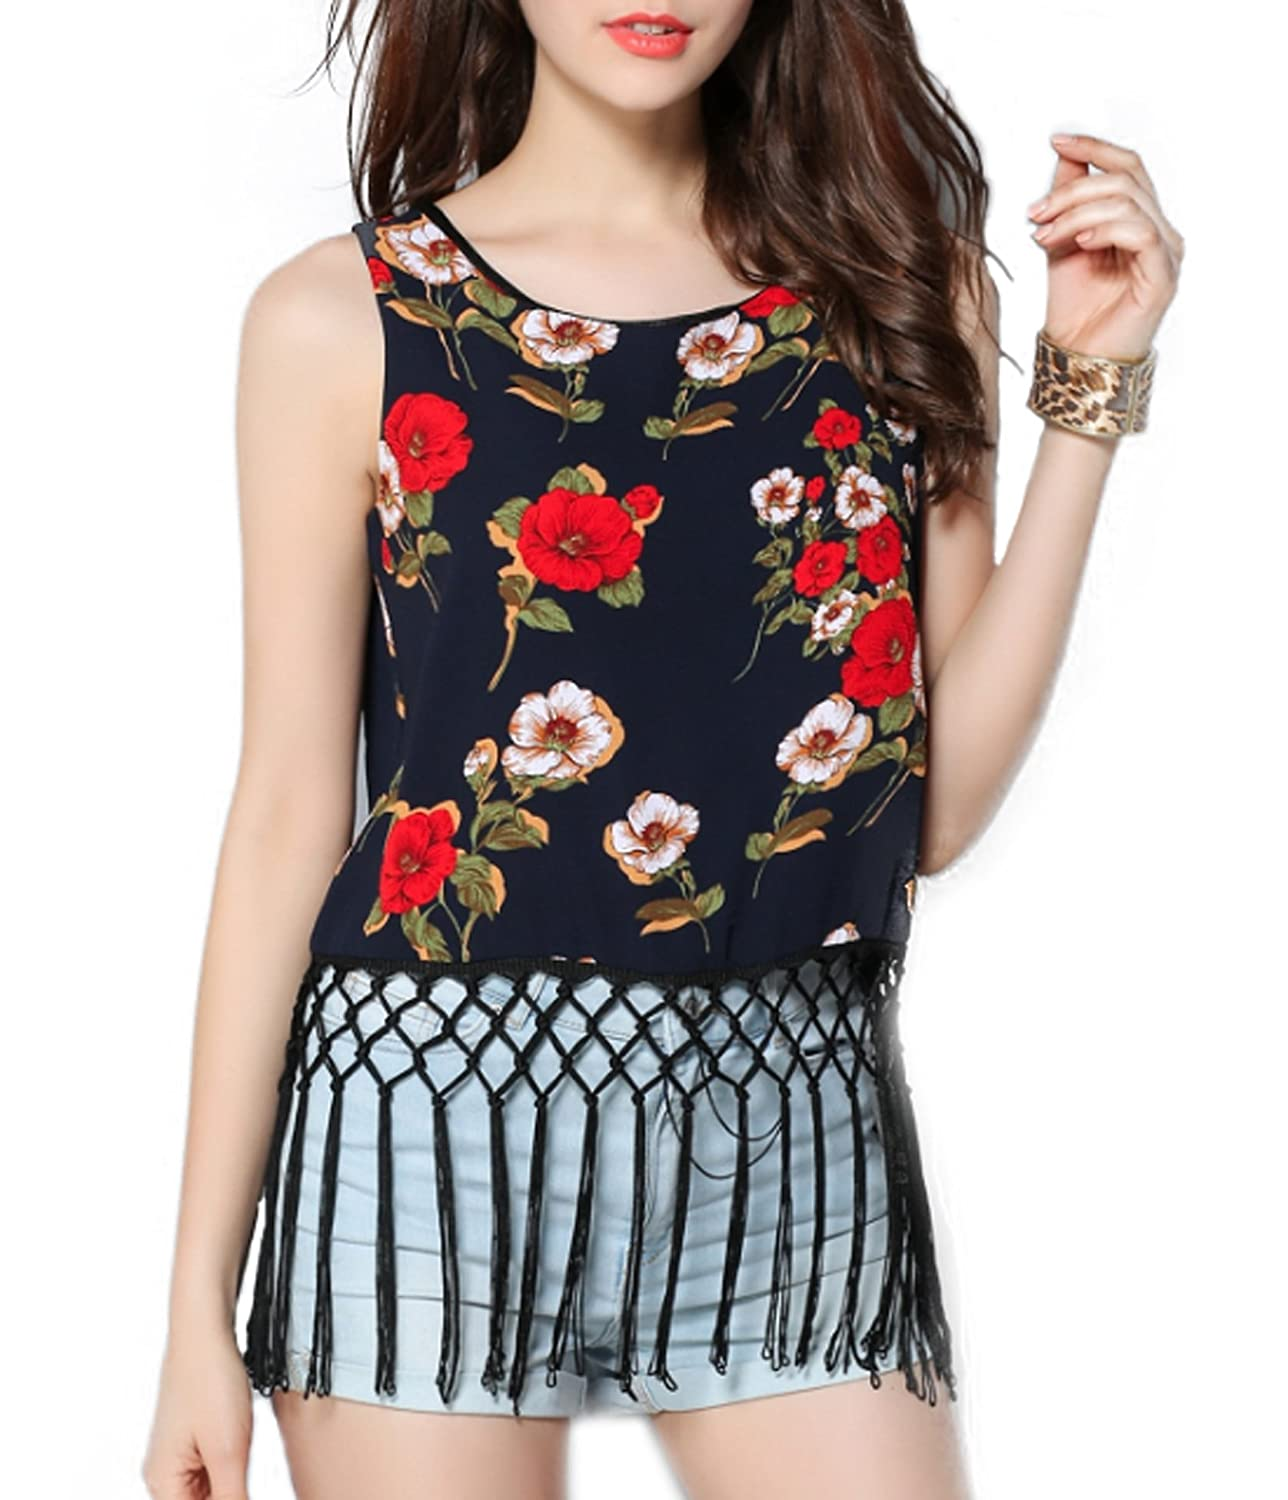 94765bce6d0 Top 10 wholesale Cami Blouse - Chinabrands.com